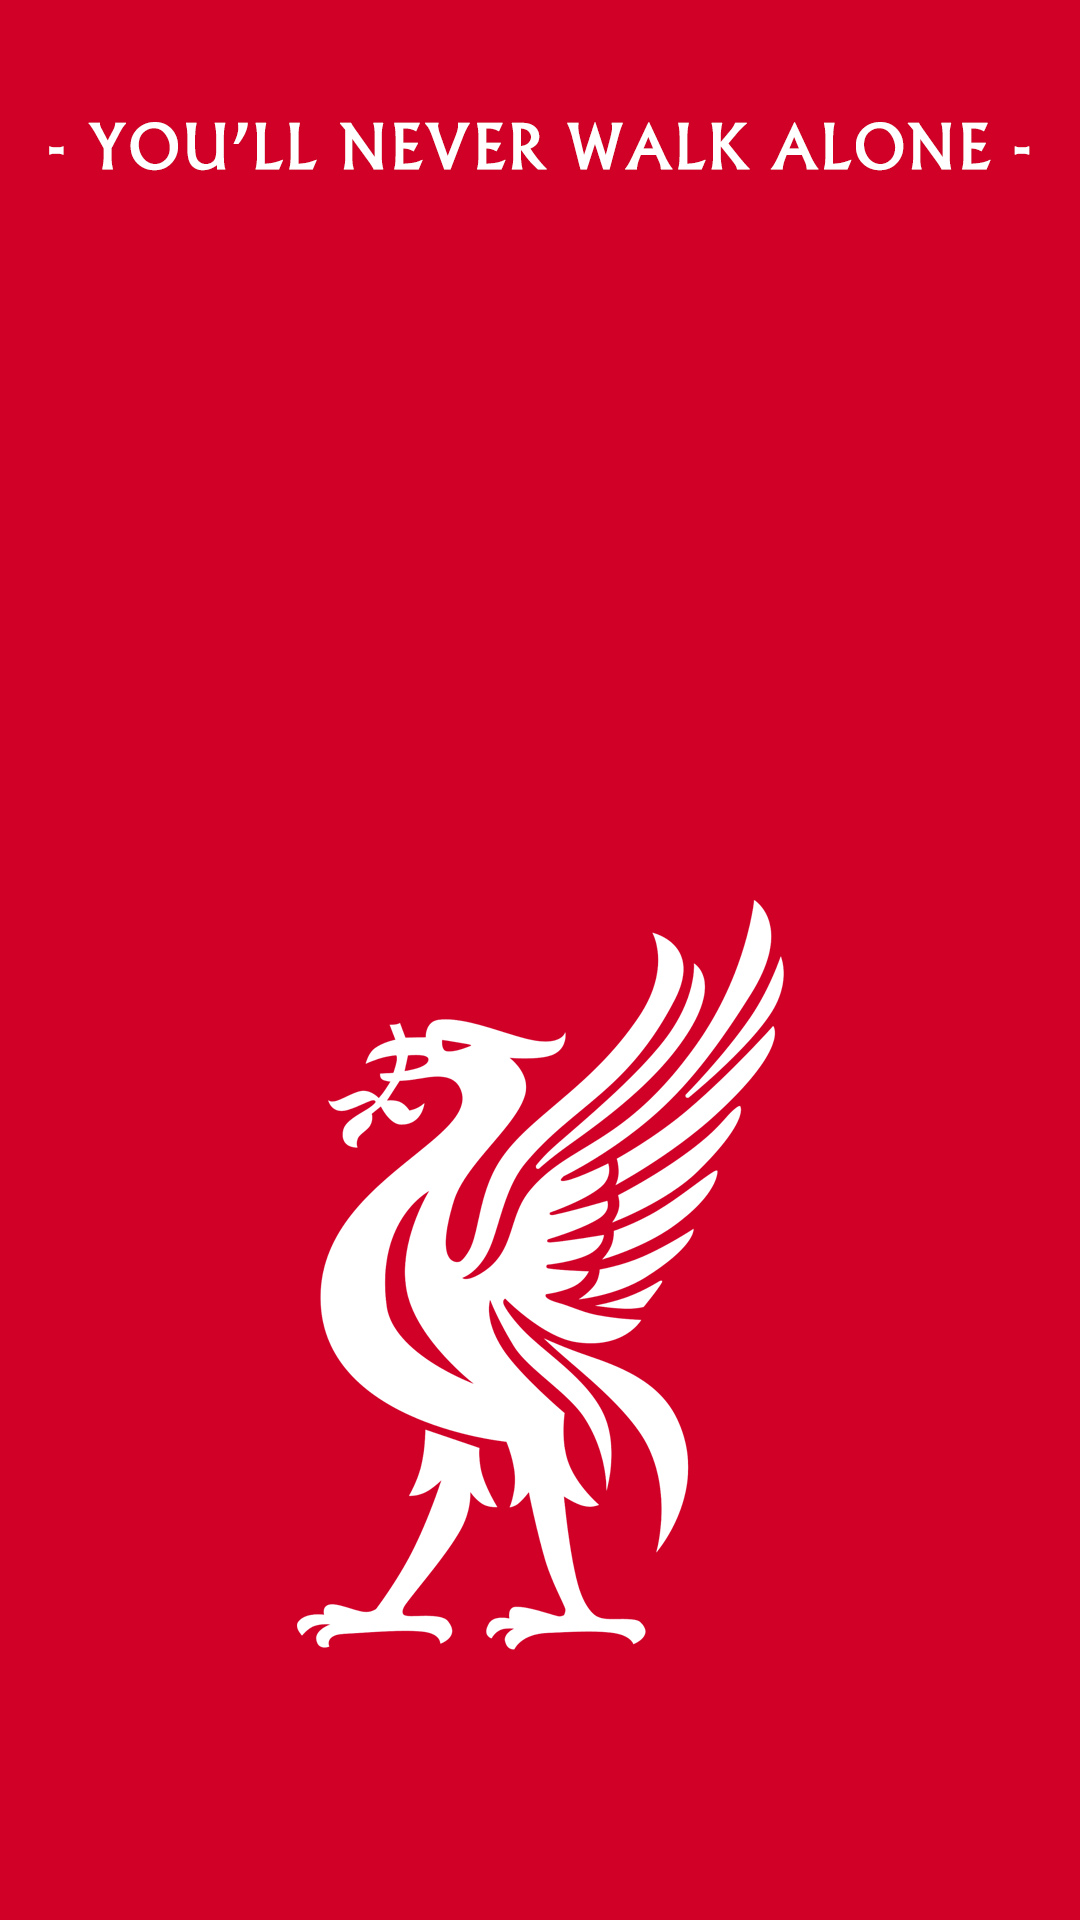 Liverpool FC Wallpapers - Album on Imgur